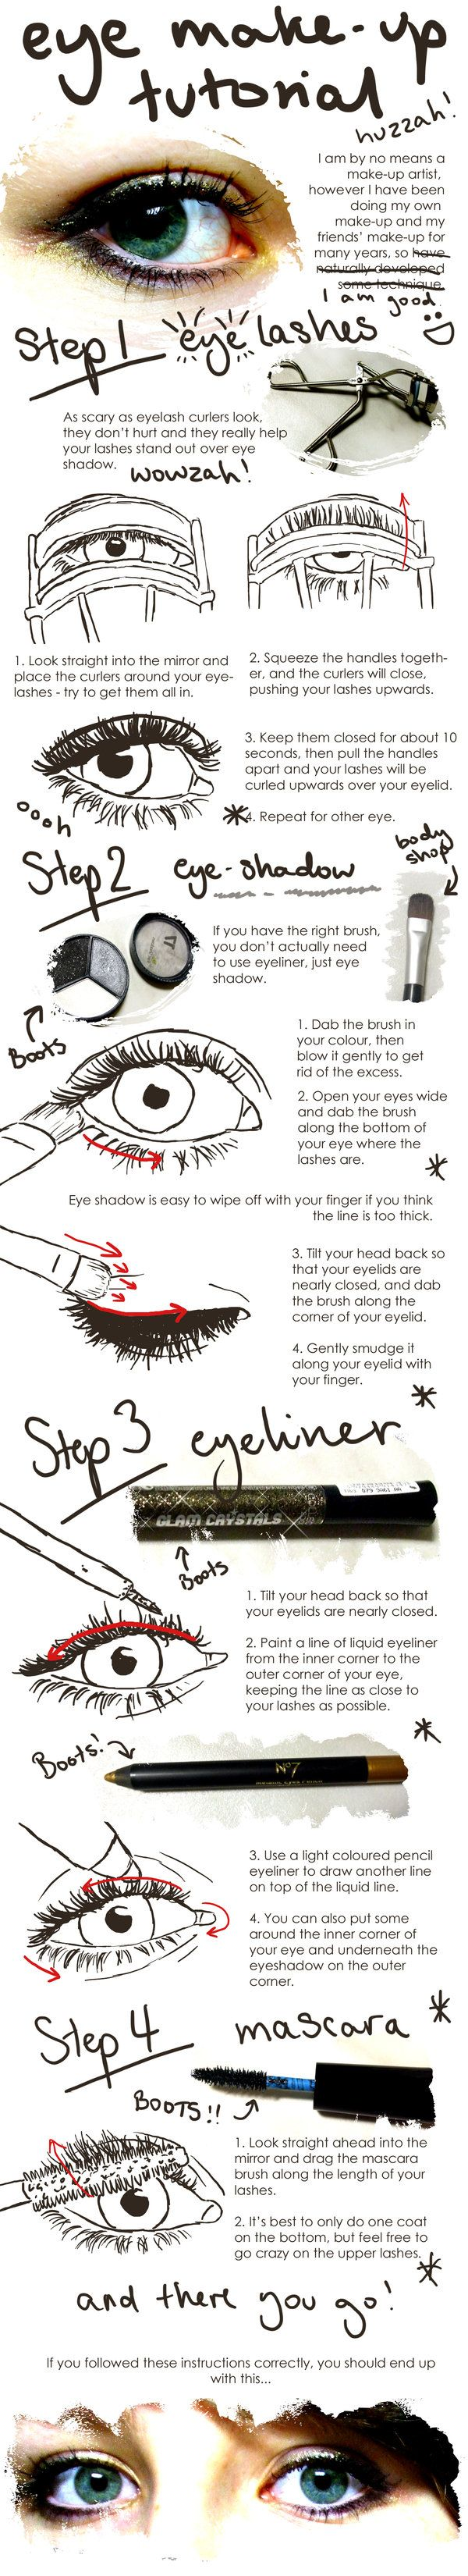 Eye Make-Up Tutorial by ~lemonfox2002 on deviantART